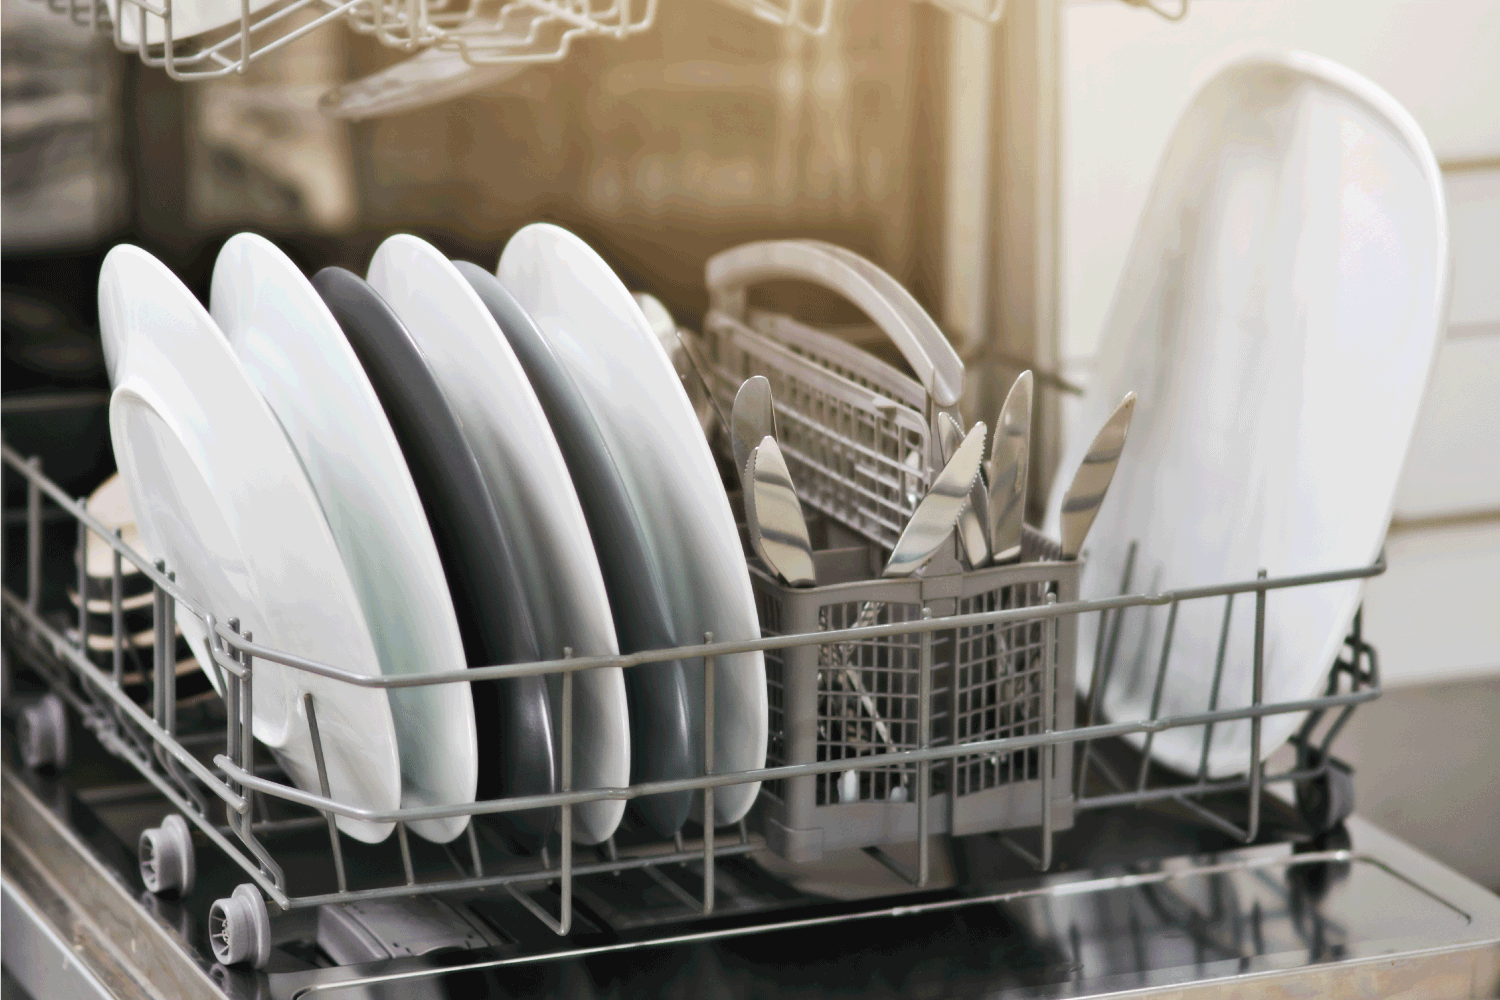 Dirty dishes no more stacked on a dishwasher tray